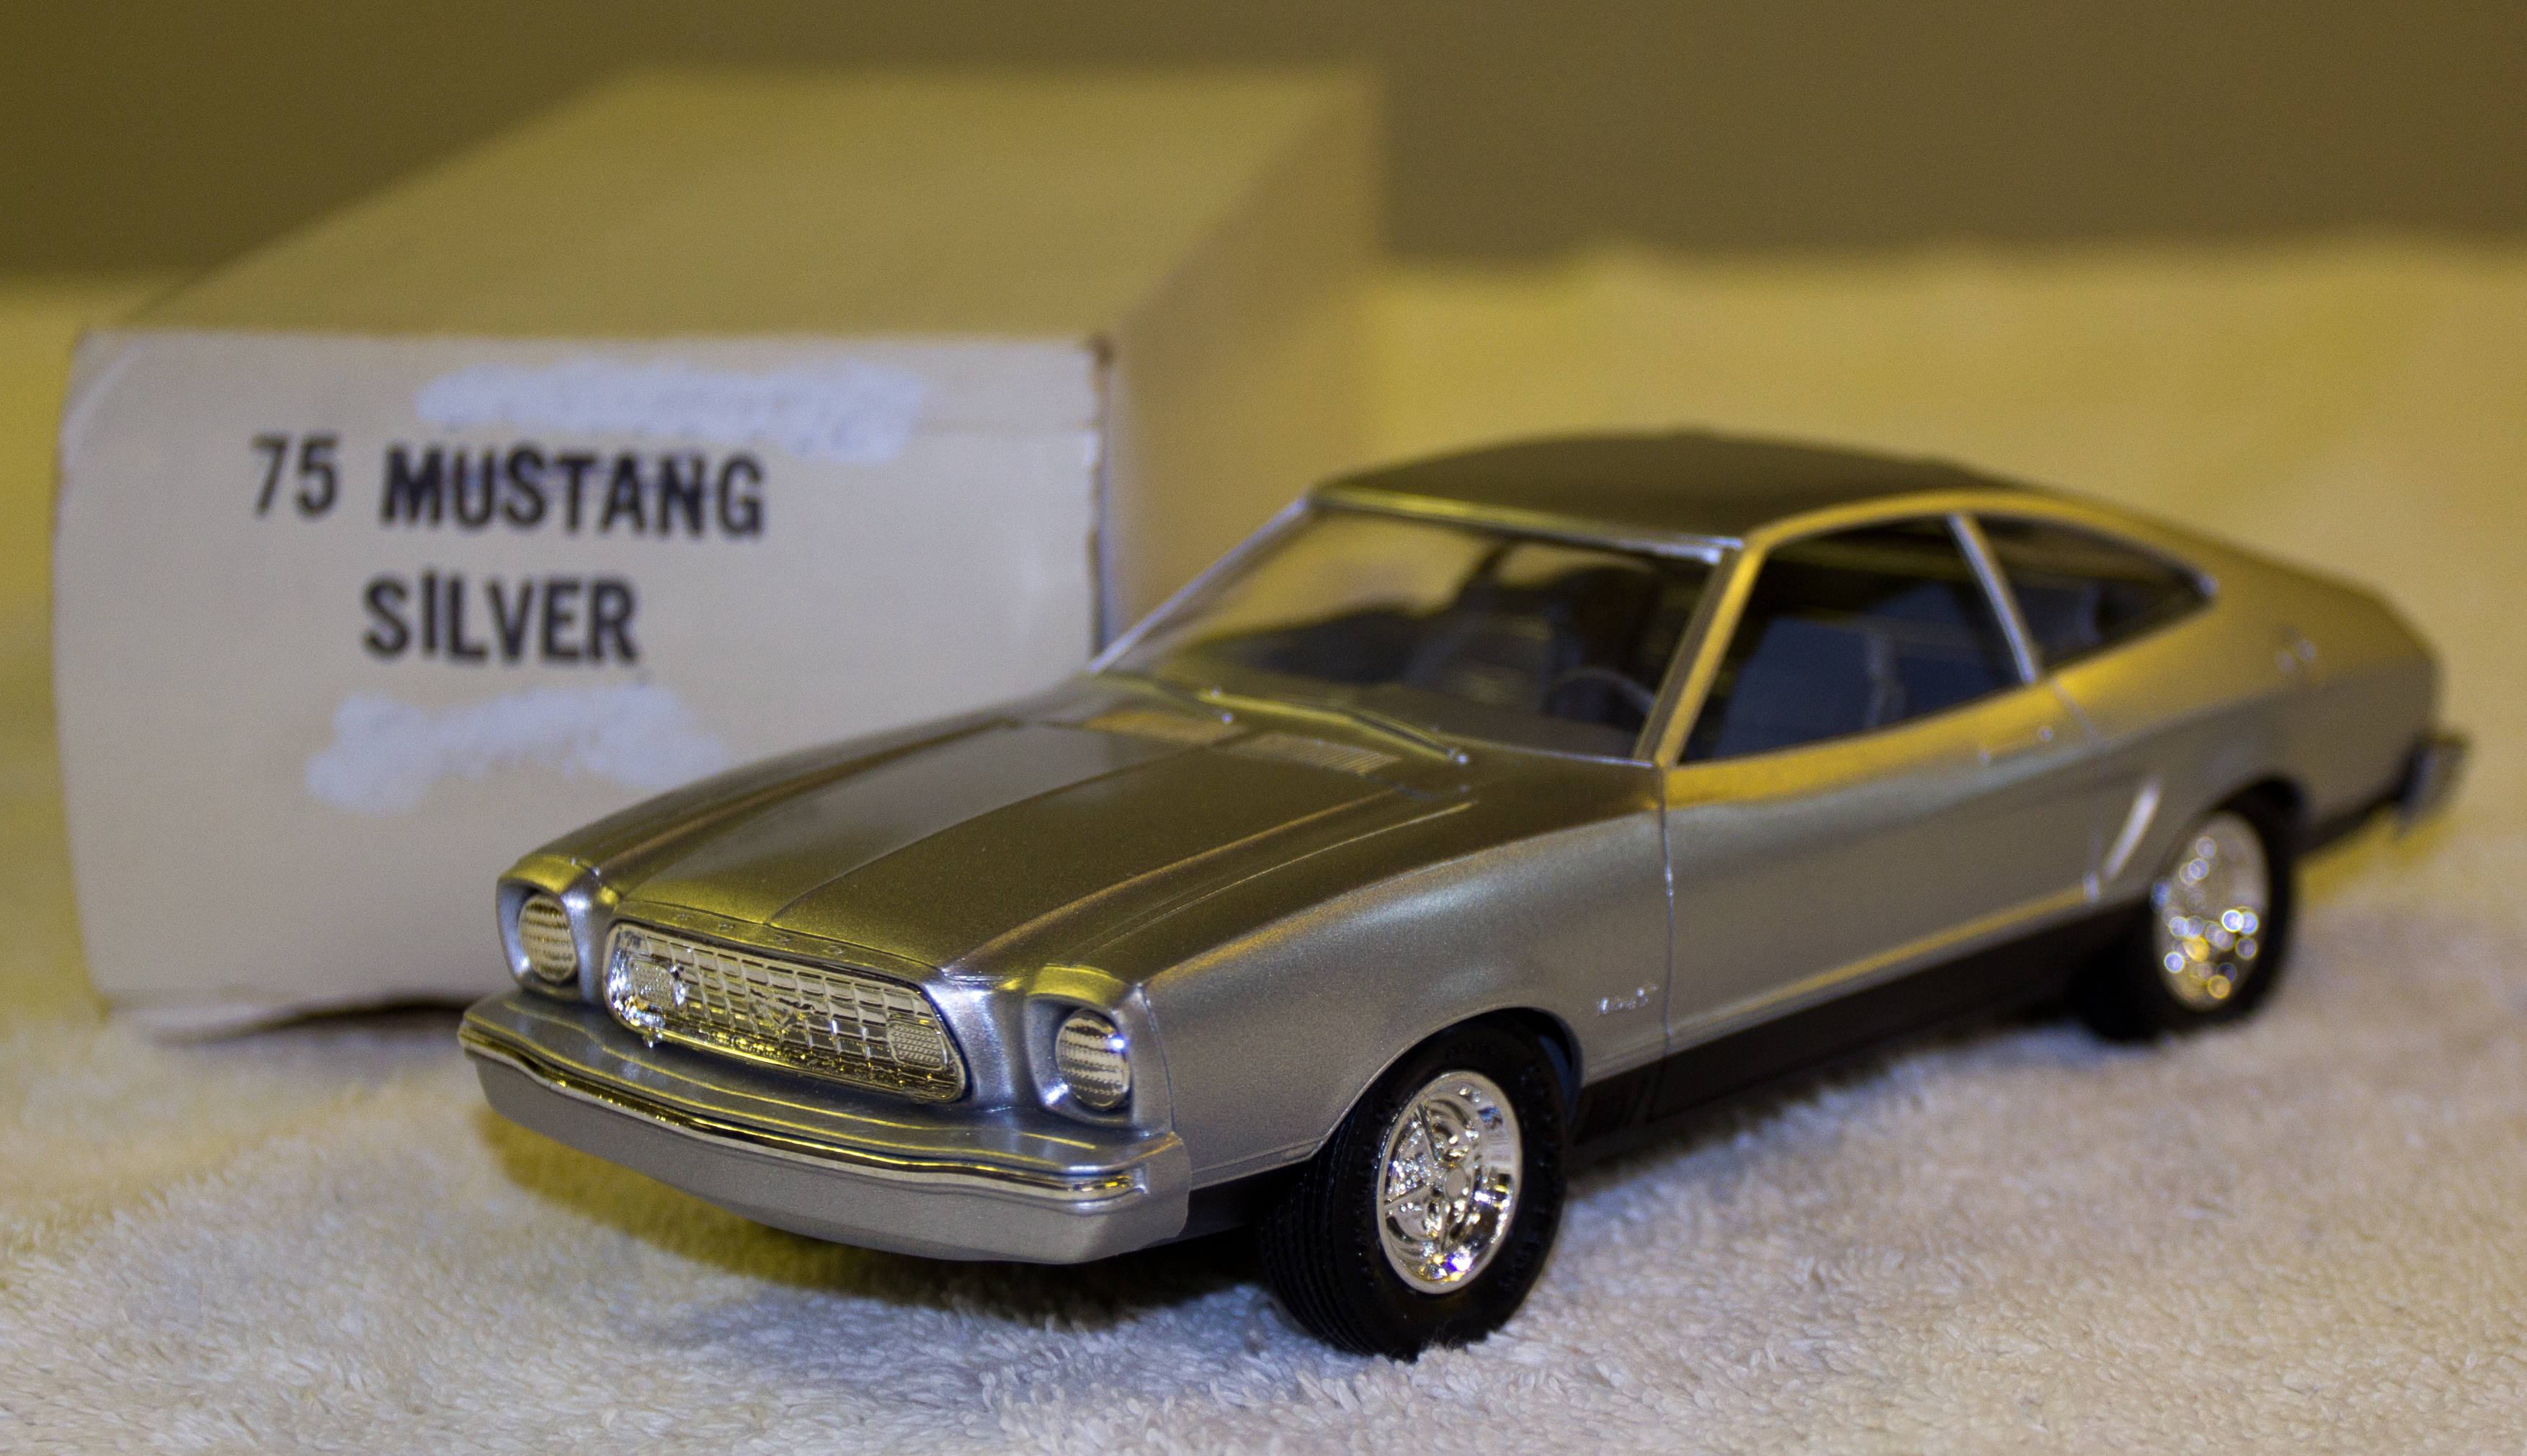 1975 Ford Mustang II Mach I Fastback Promo Model Car | Model Cars | hobbyDB & 1975 Ford Mustang II Mach I Fastback Promo Model Car | Model Cars ... markmcfarlin.com